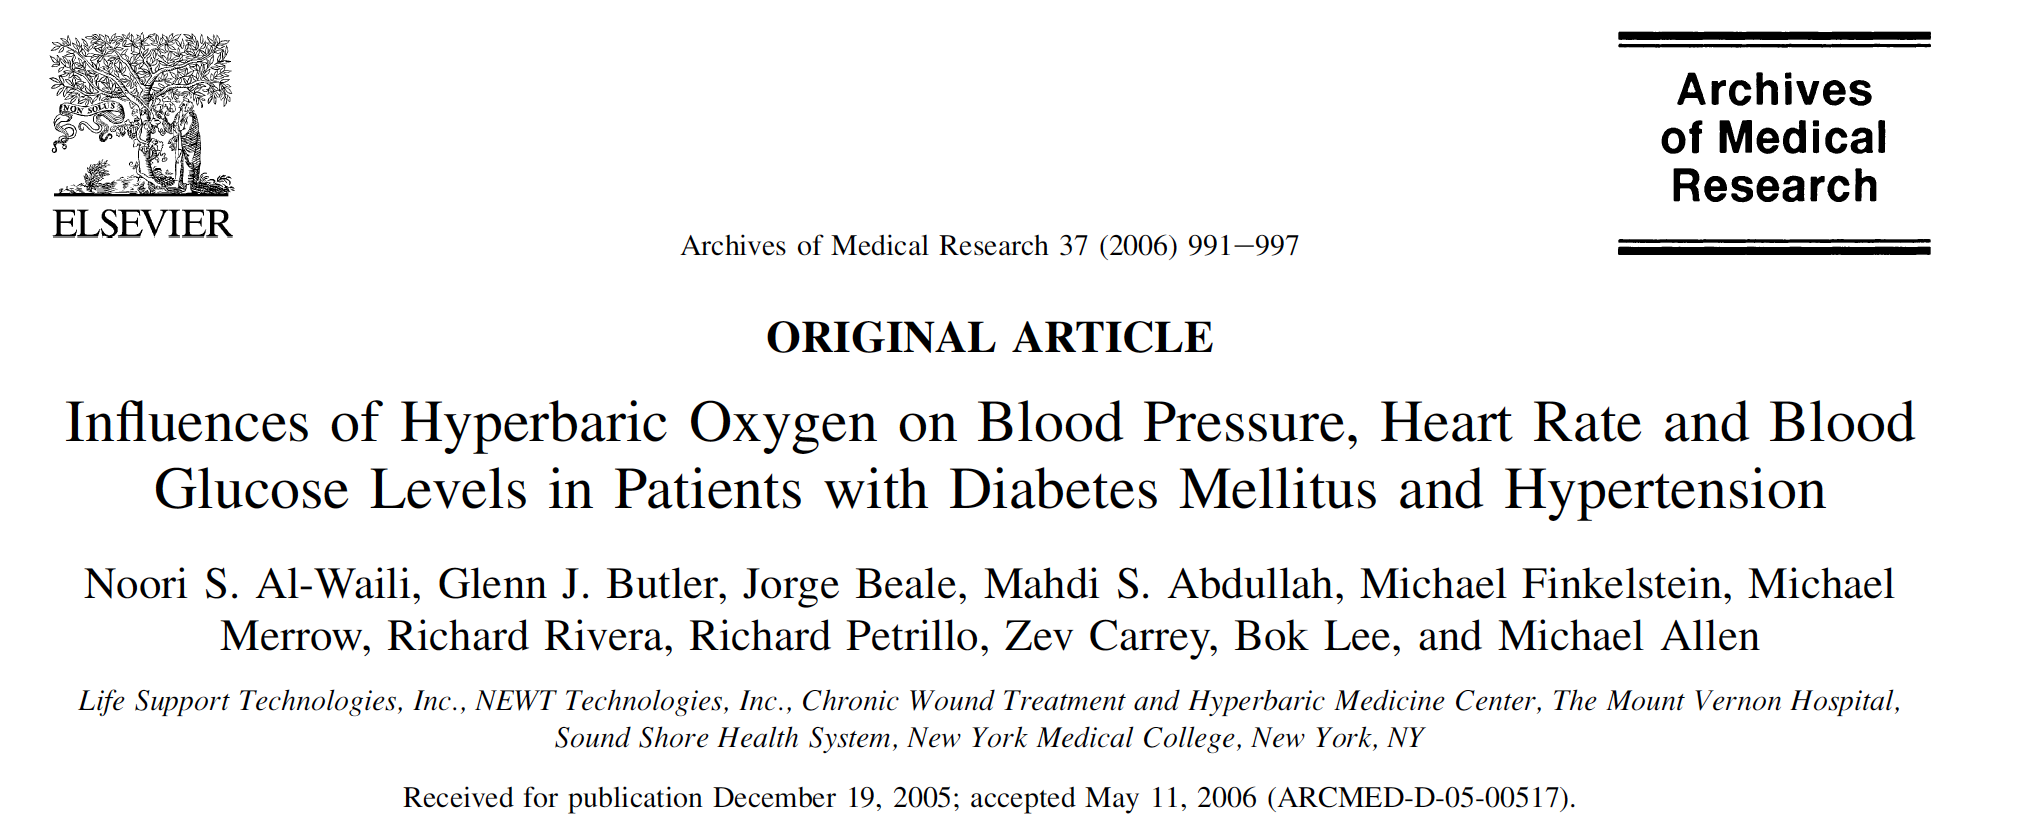 - Hyperbaric oxygen significantly lowers blood sugar in diabetic subjects